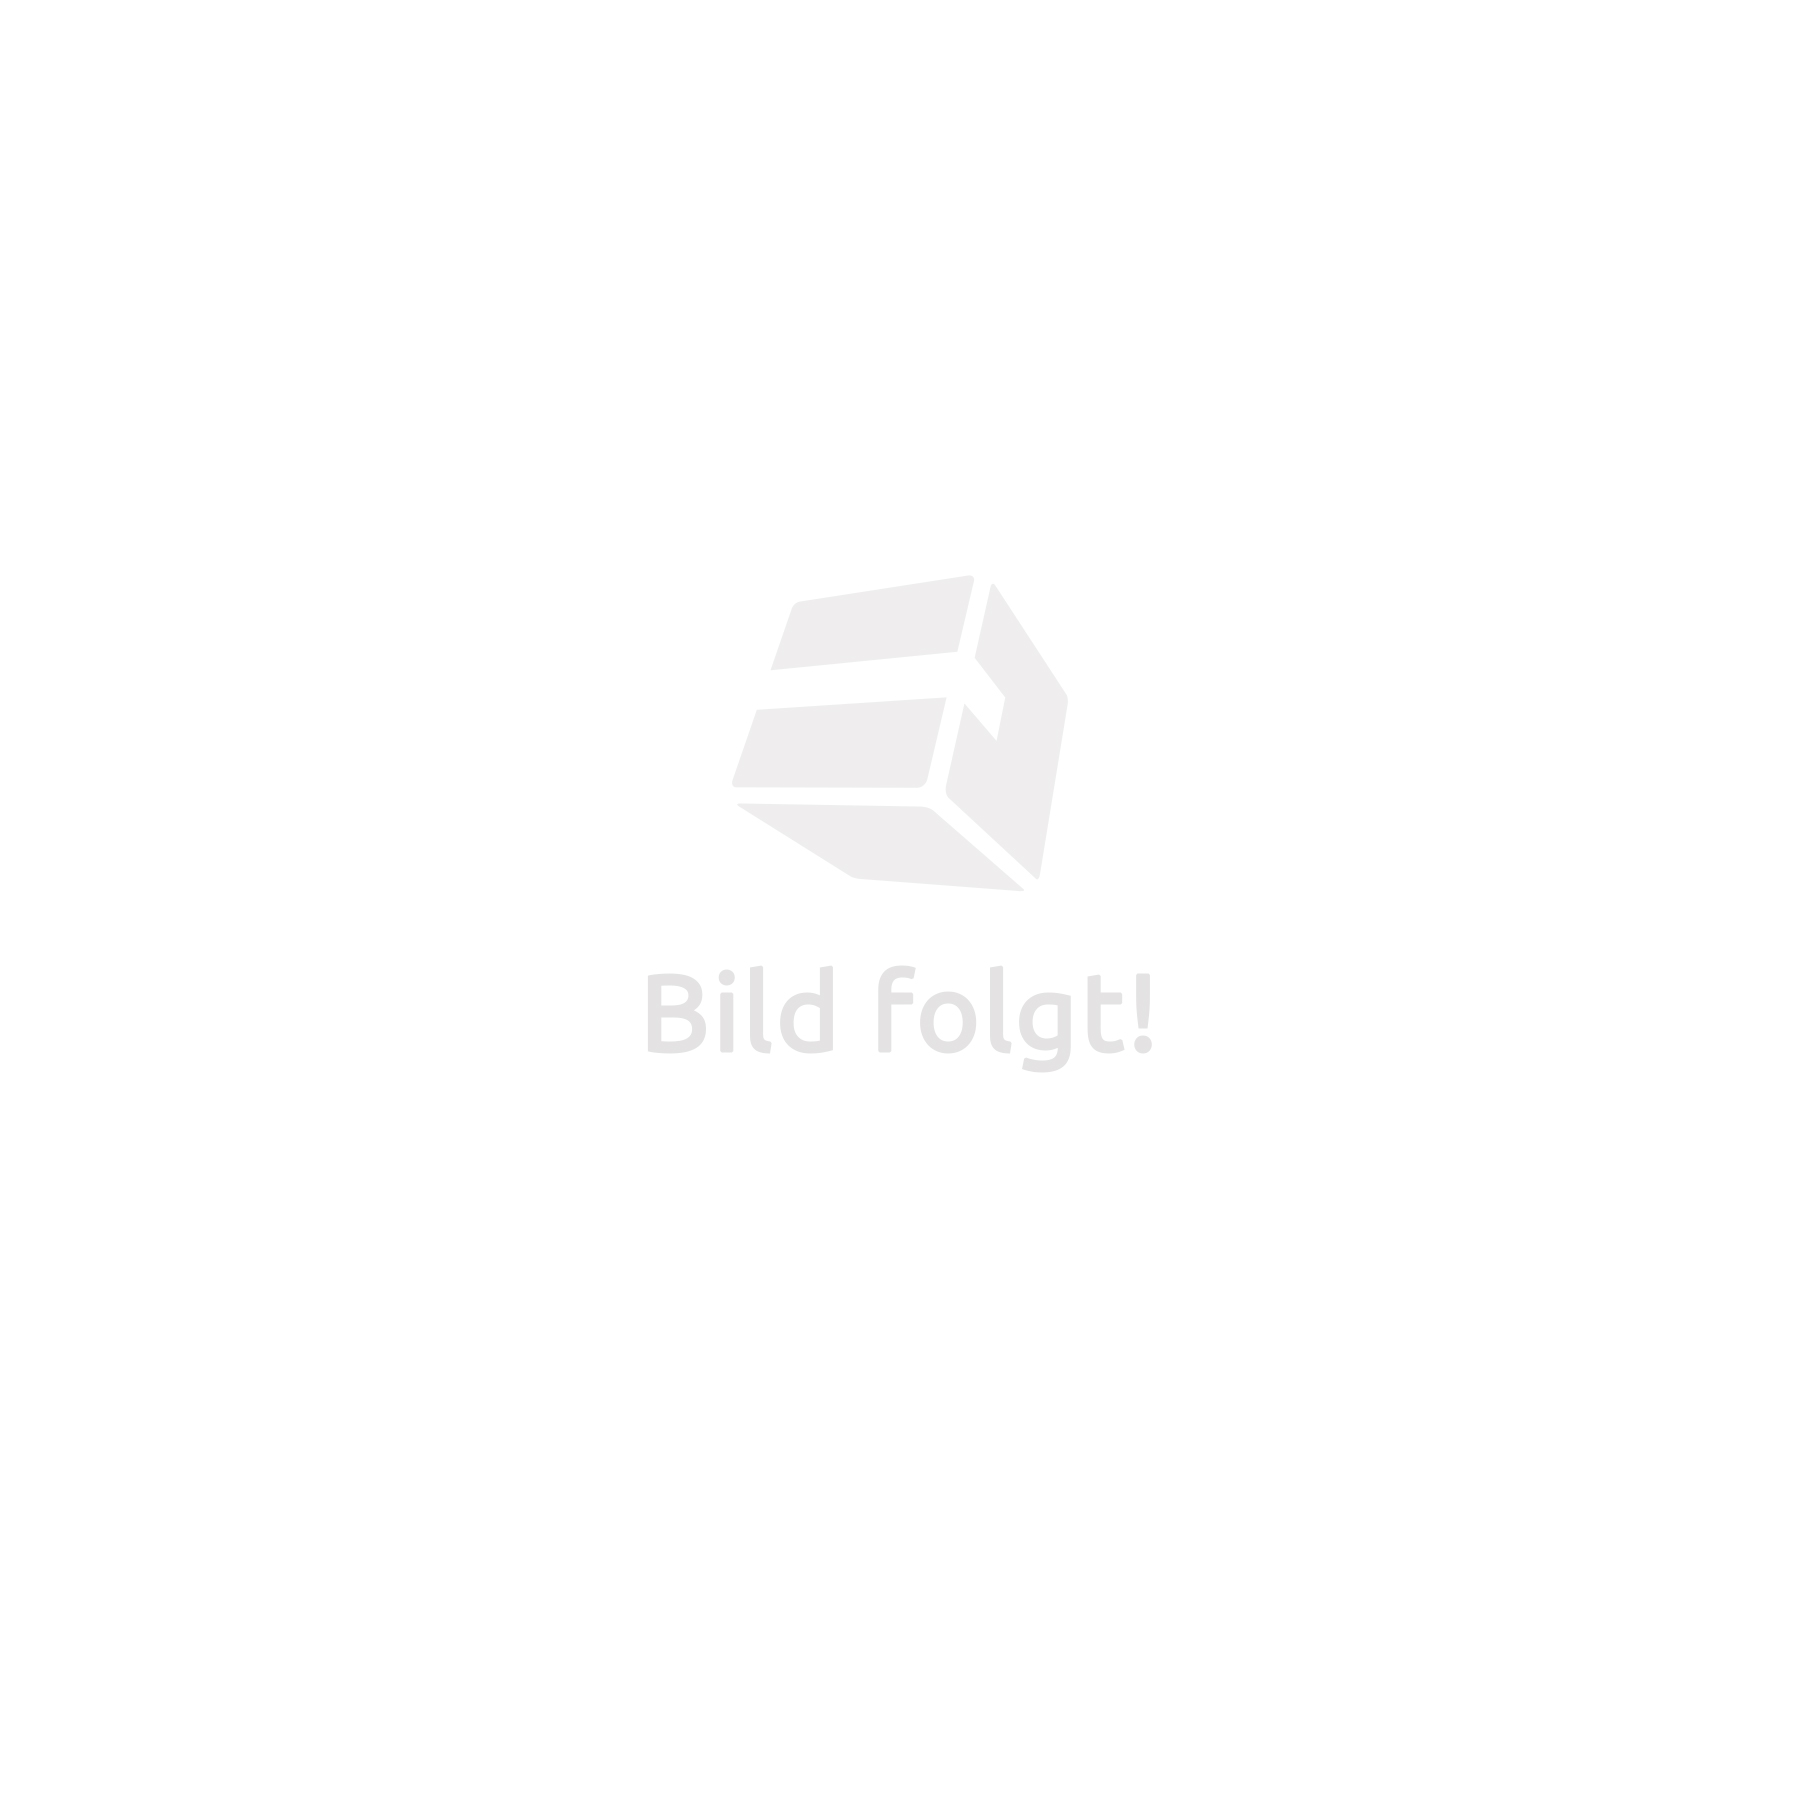 2 HVLP paint spray guns (1.0+ 1.7 mm) + mask + silicone remover